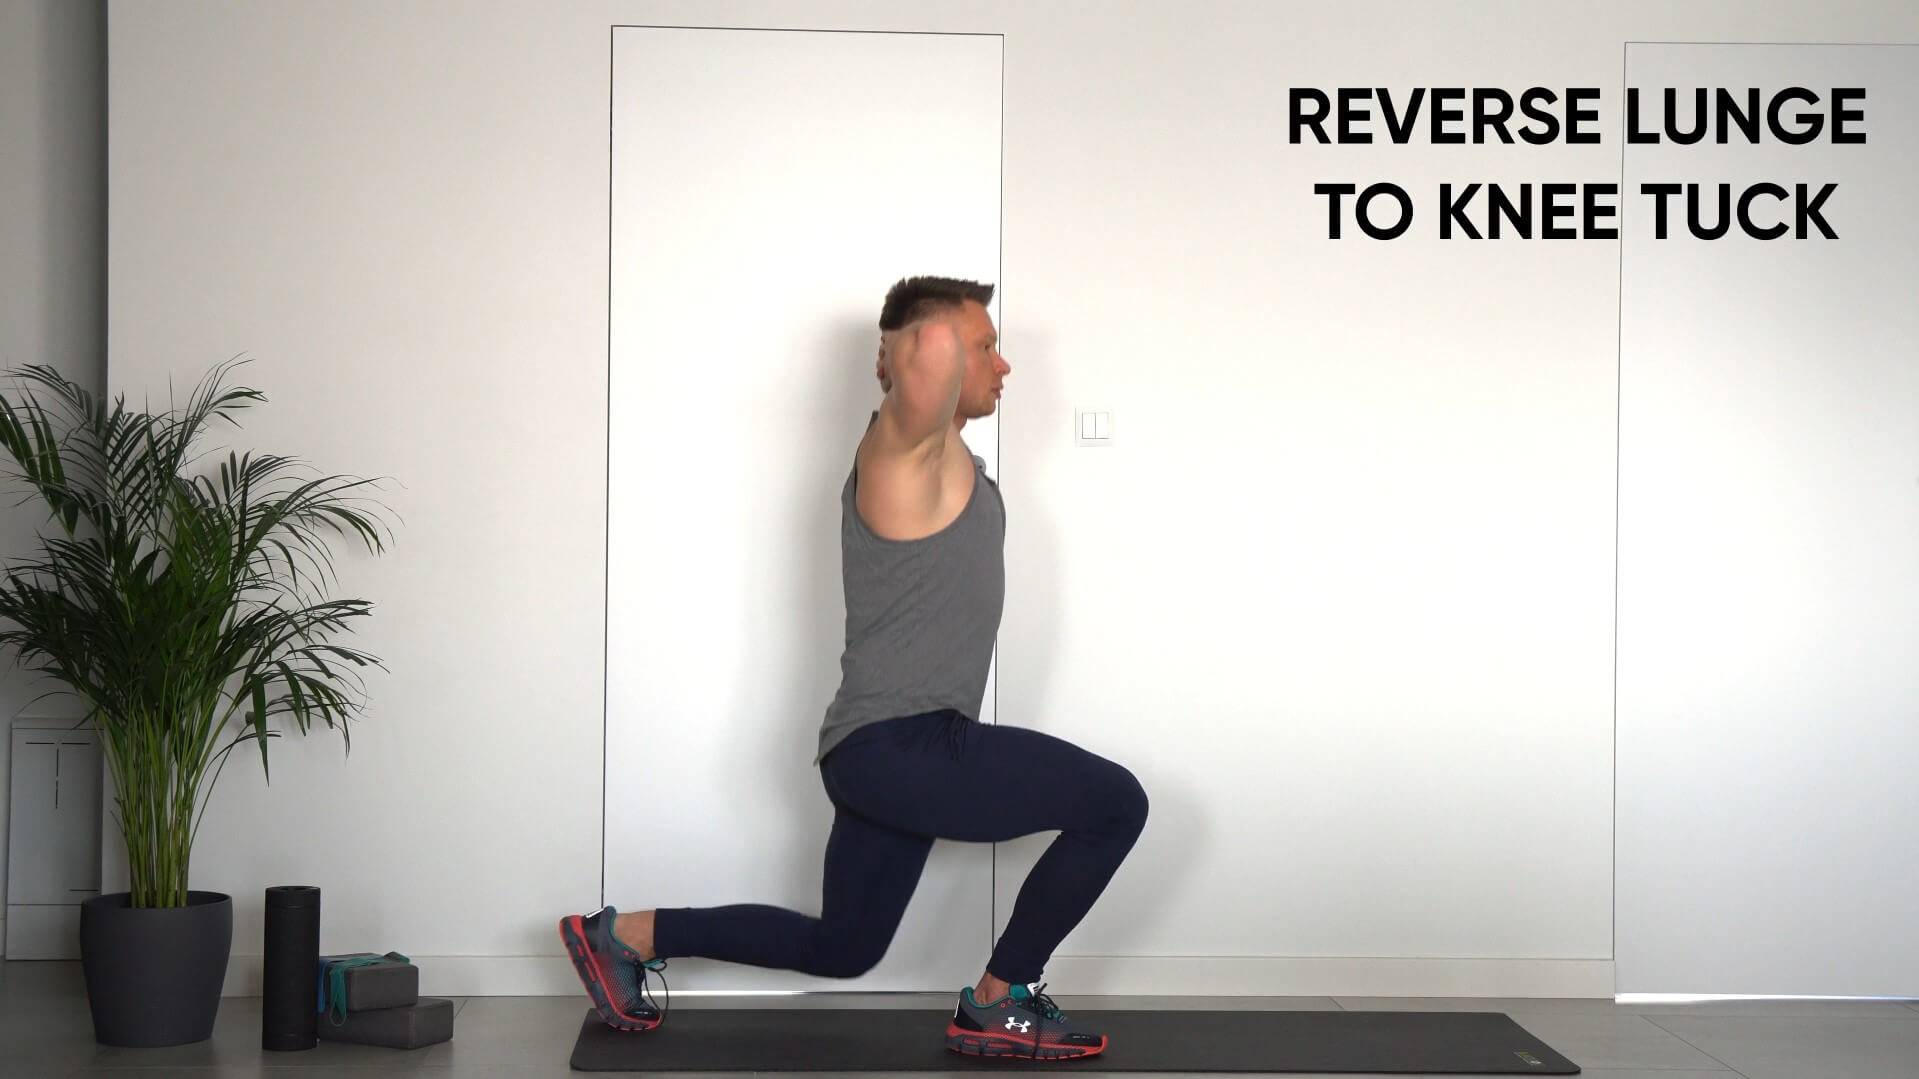 Reverse lunge to knee tuck